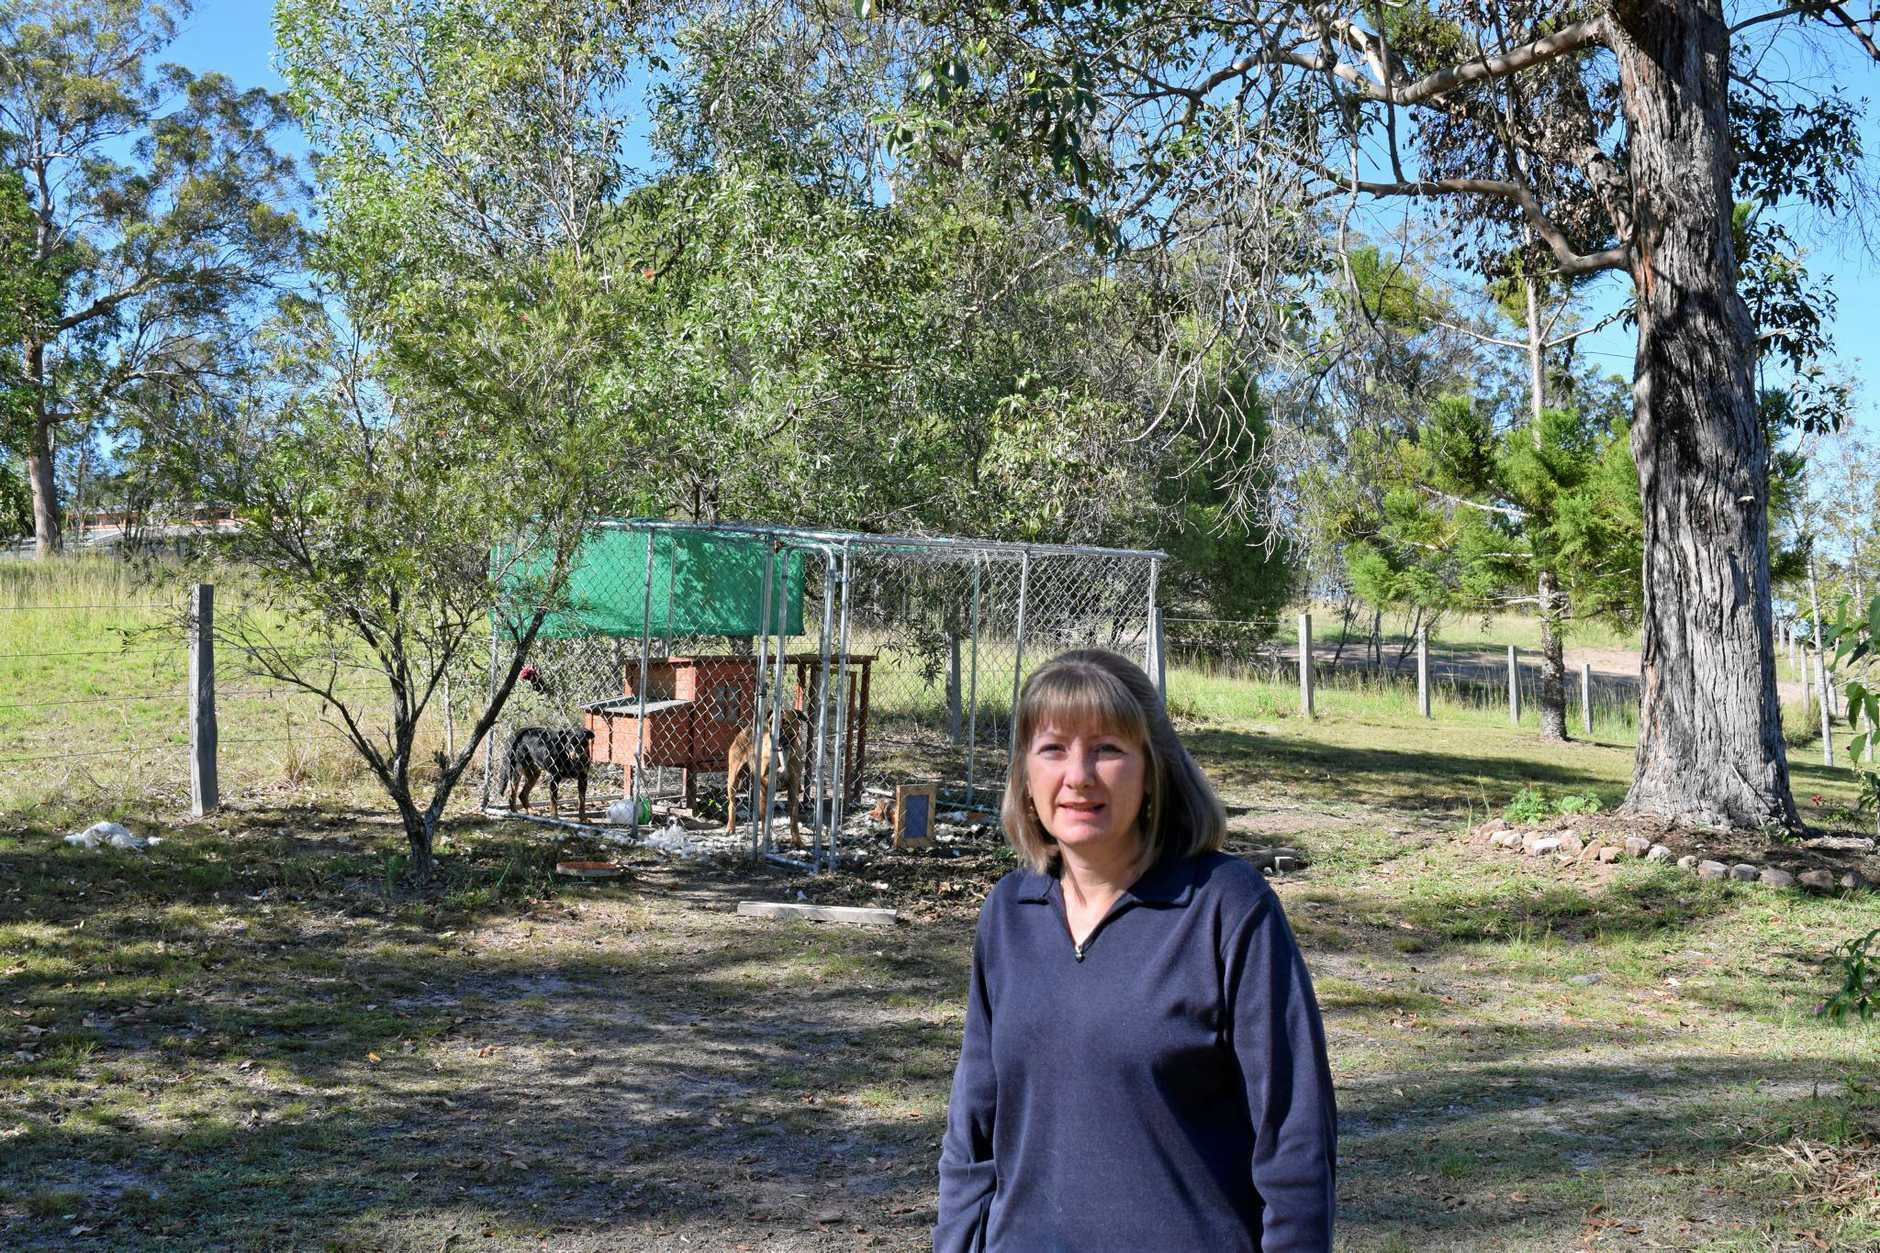 Southside resident Sharon Bothams is devastated after two dogs got into her chook pen last night and killed the family's pet chickens.